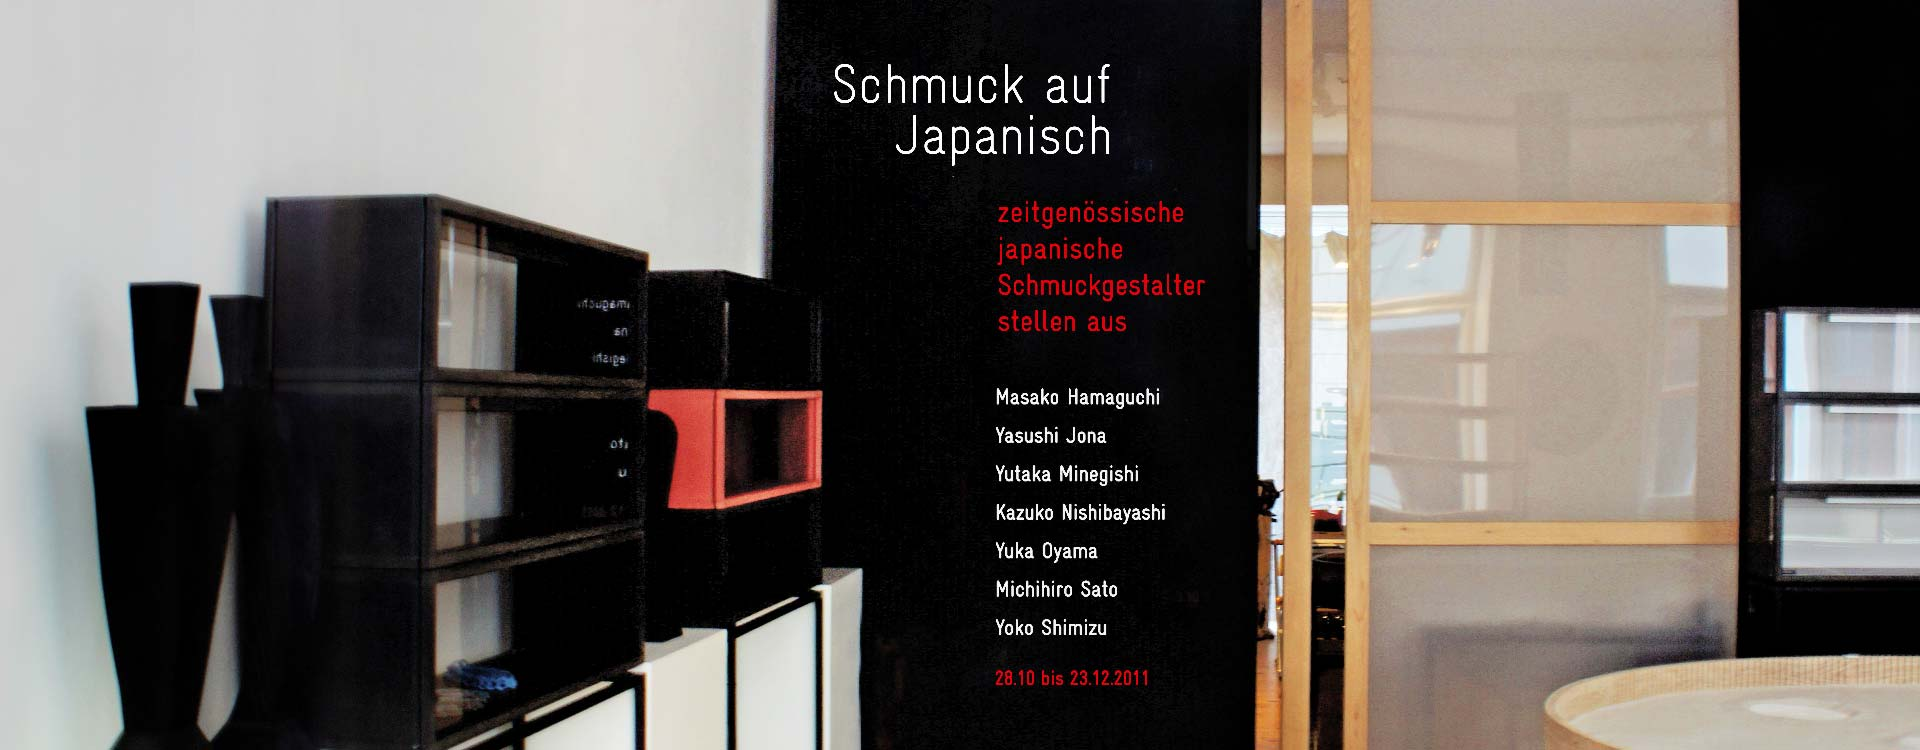 "Folienschnitt an der Wand zur Ausstellung ""Schmuck auf Japanisch"" in der Galerie Michaela Binder, Berlin; Design: Kattrin Richter 